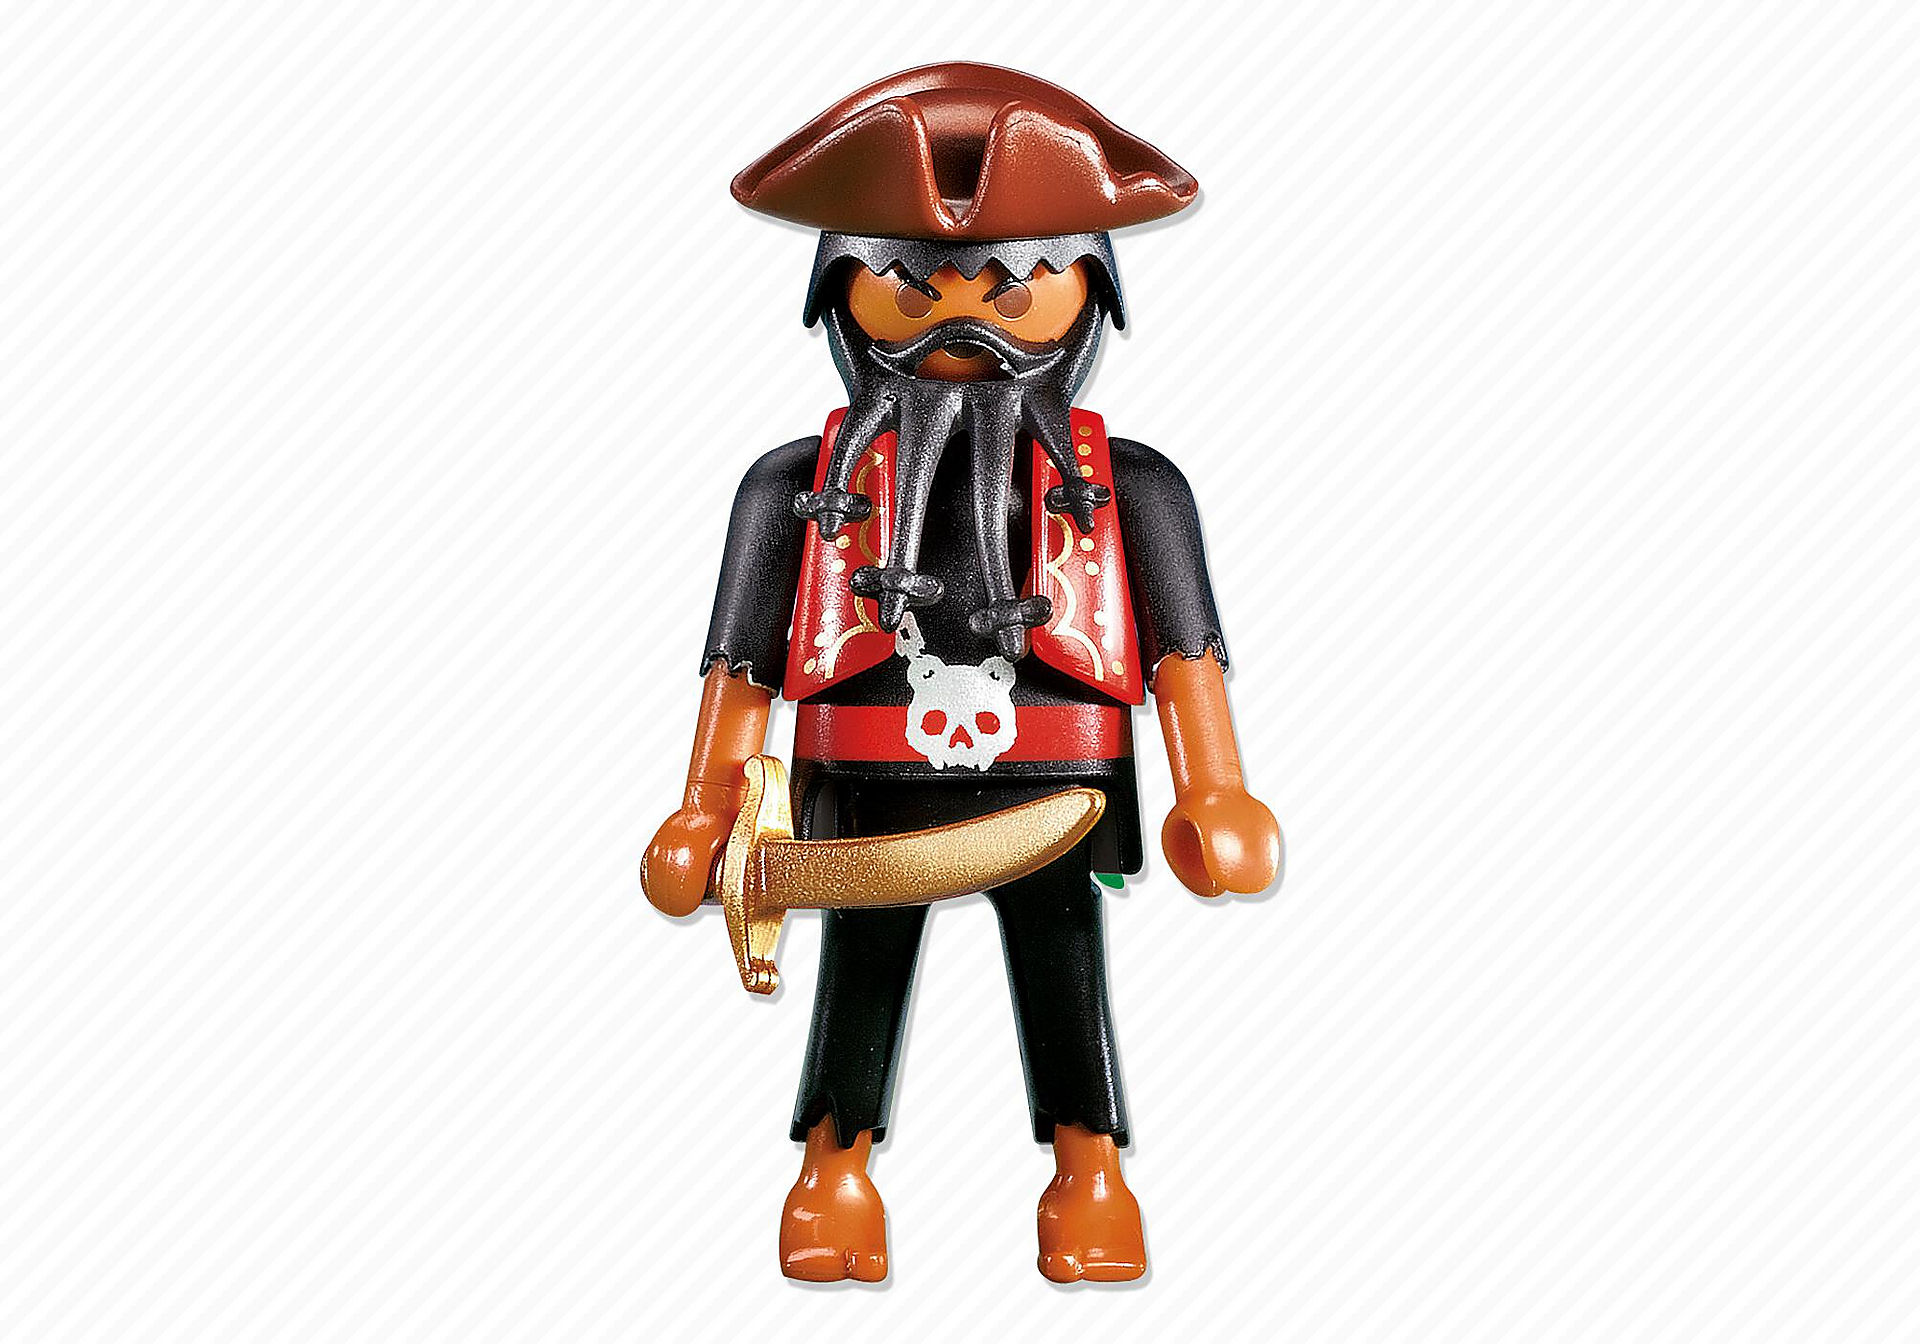 http://media.playmobil.com/i/playmobil/7380_product_detail/Piratenkapitän